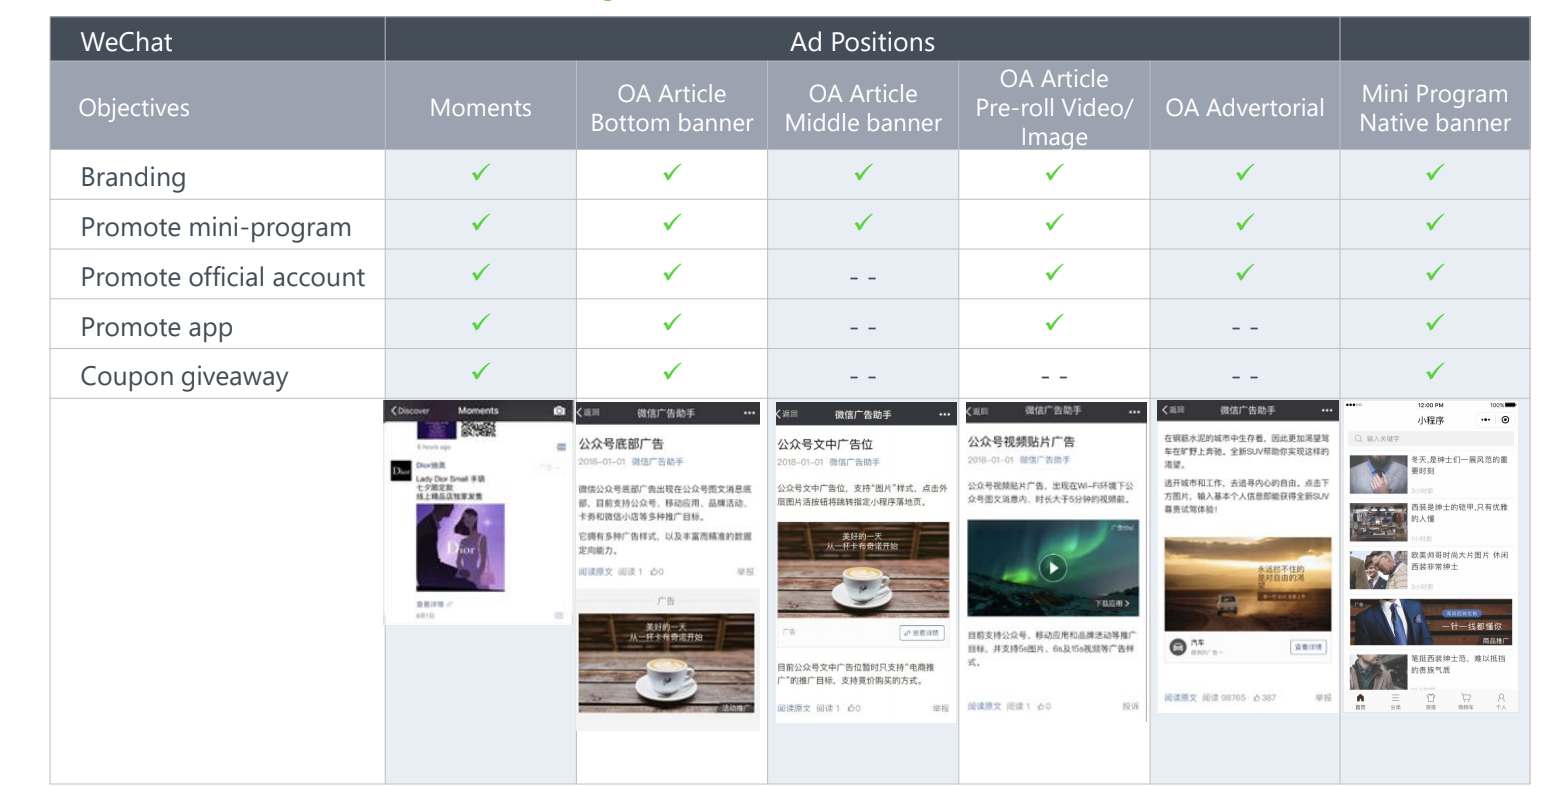 WeChat ad formats summary